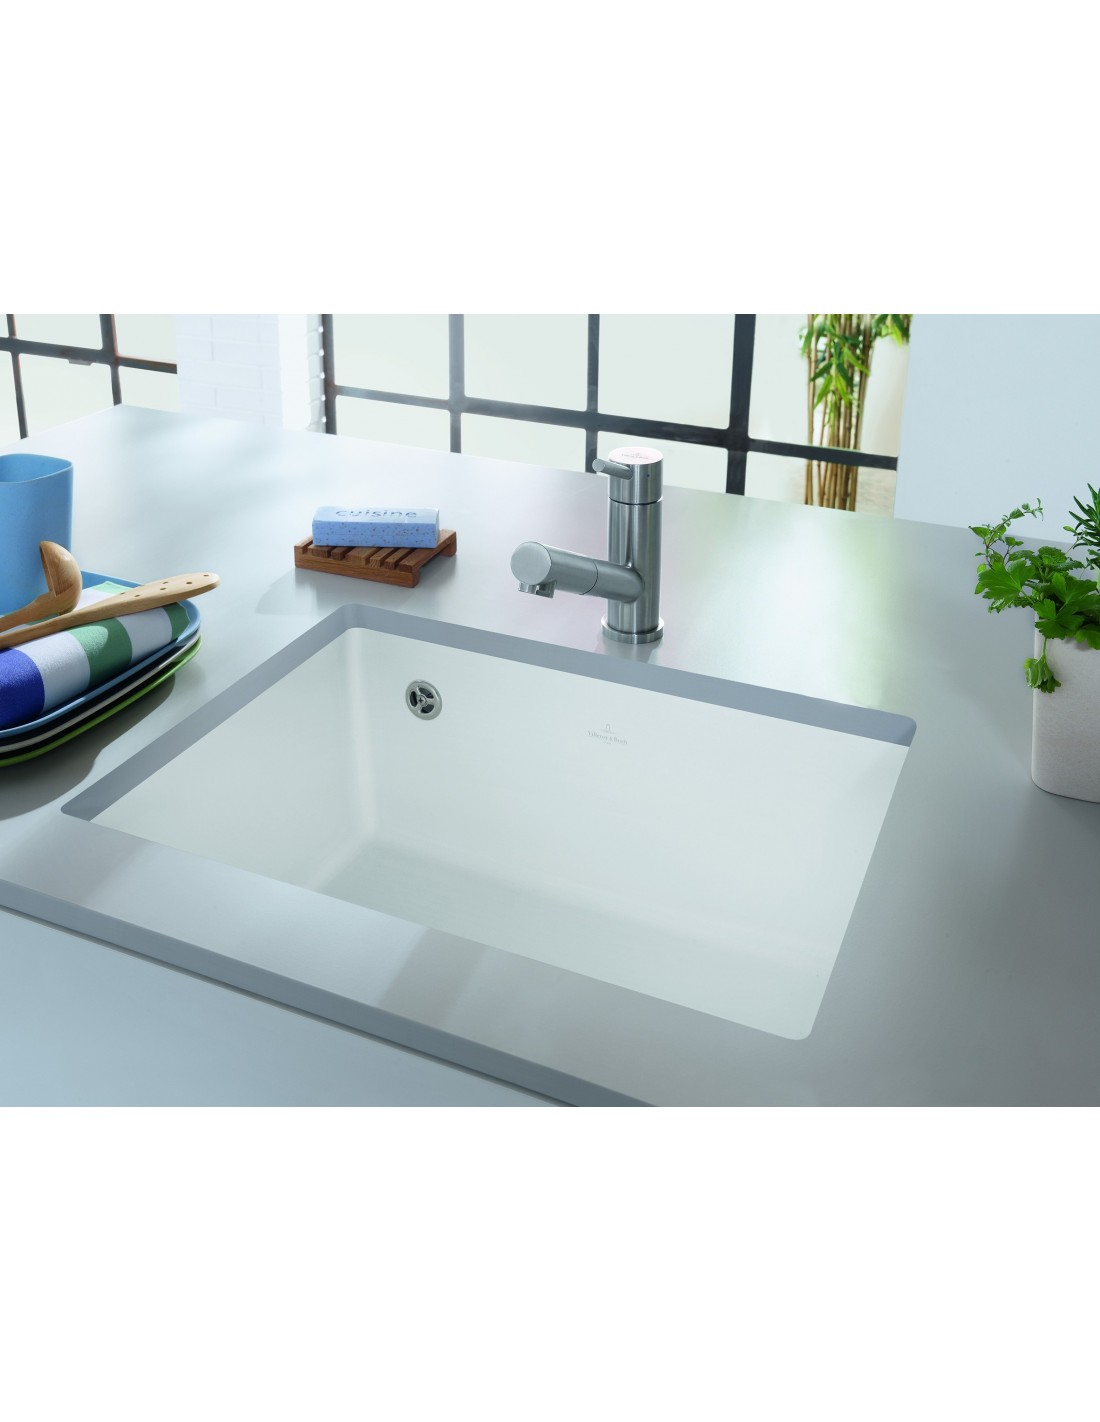 villeroy boch subway 60su single bowl undermount sink 331000. Black Bedroom Furniture Sets. Home Design Ideas